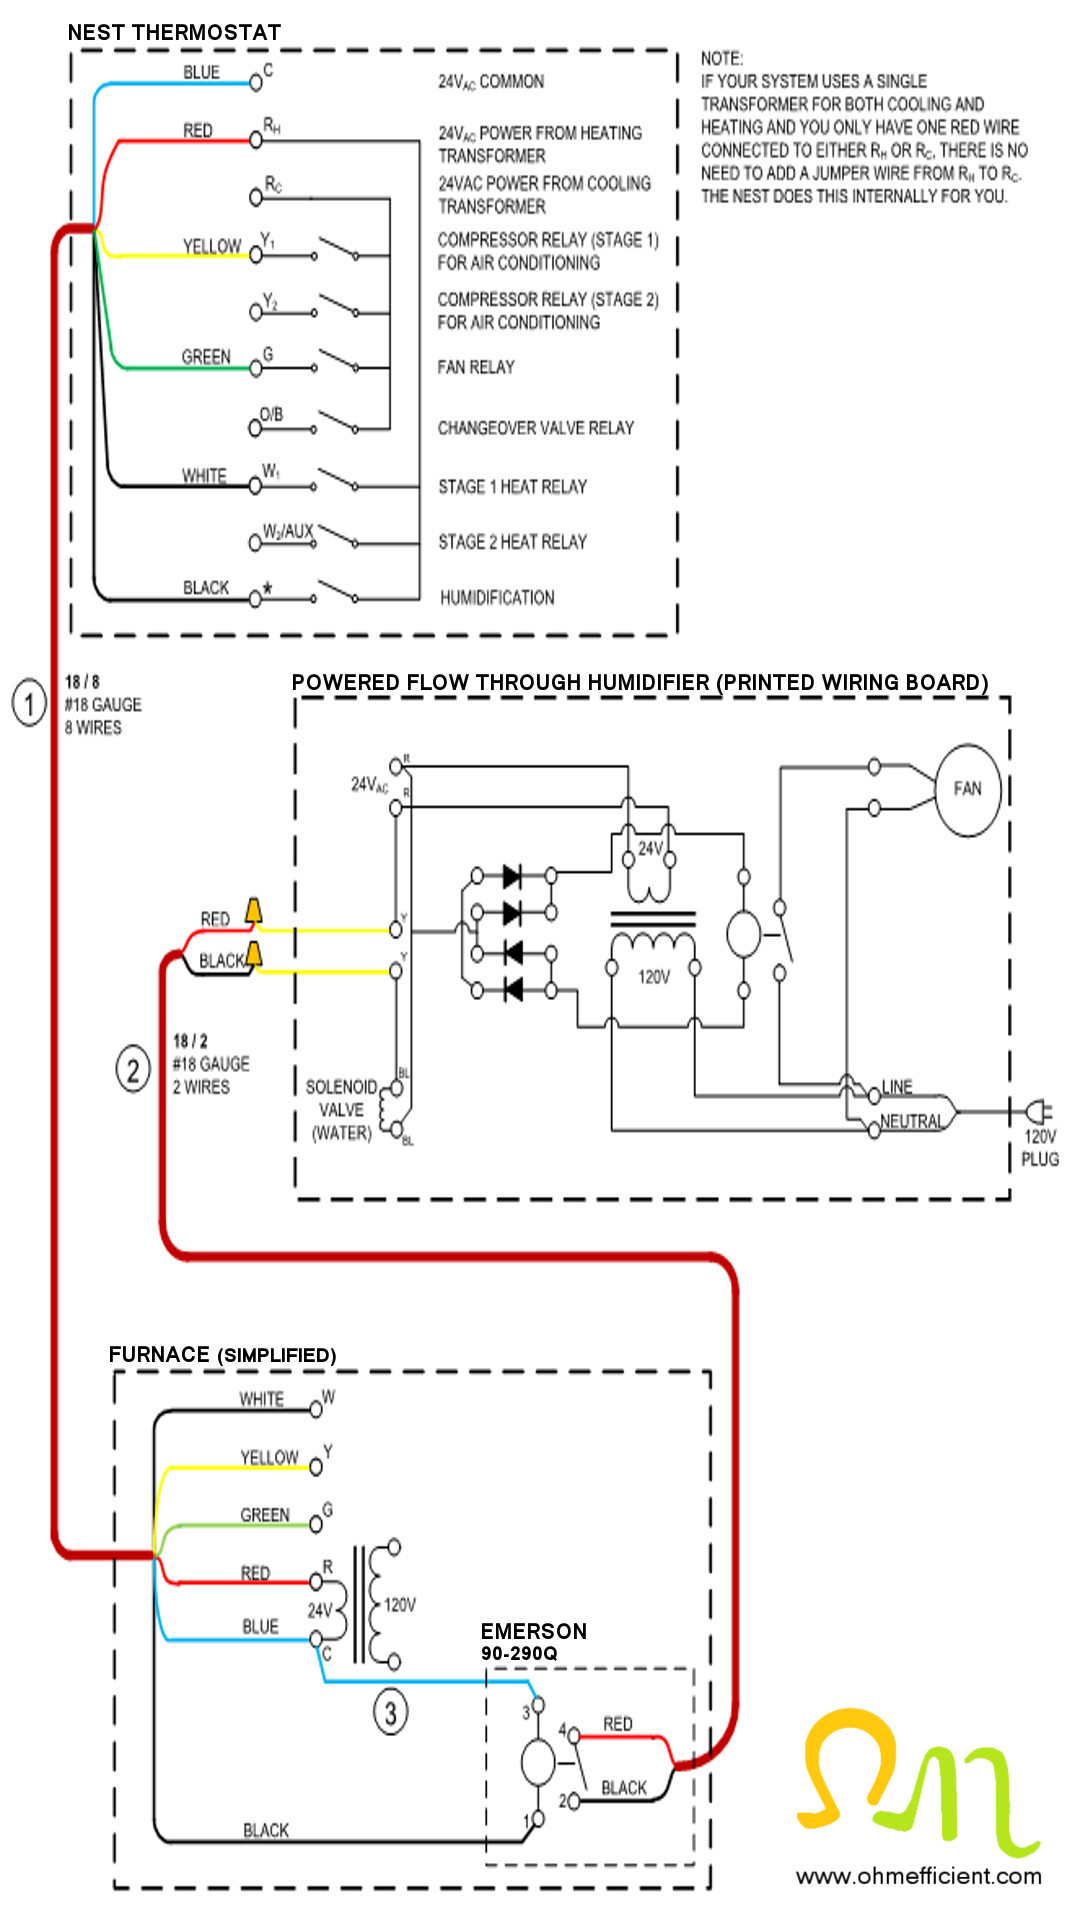 Nest Thermostat Wiring Diagram 2 Wire